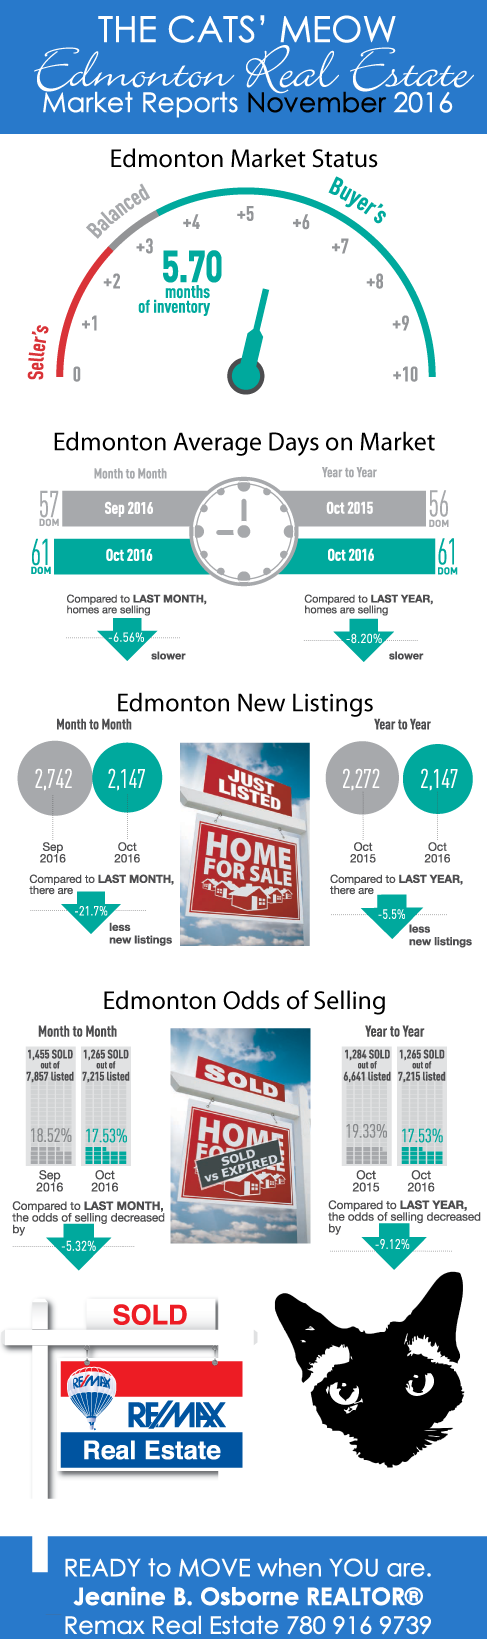 Edmonton Real Estate Market Reports November 2016